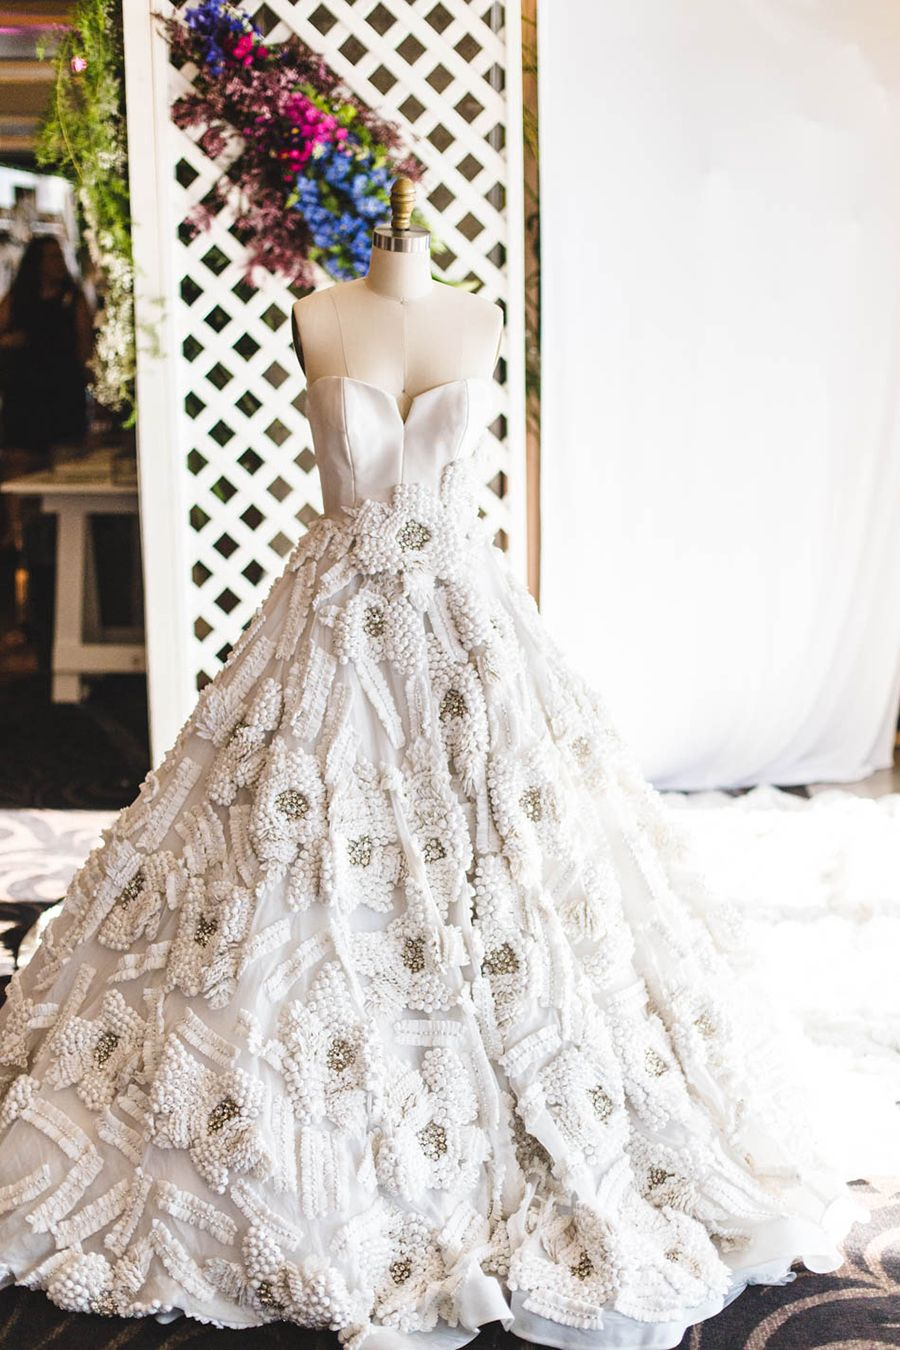 Traditional filipino wedding dress  Stepping Into a Wedding Wonderland The Bridal Bazaar  Part